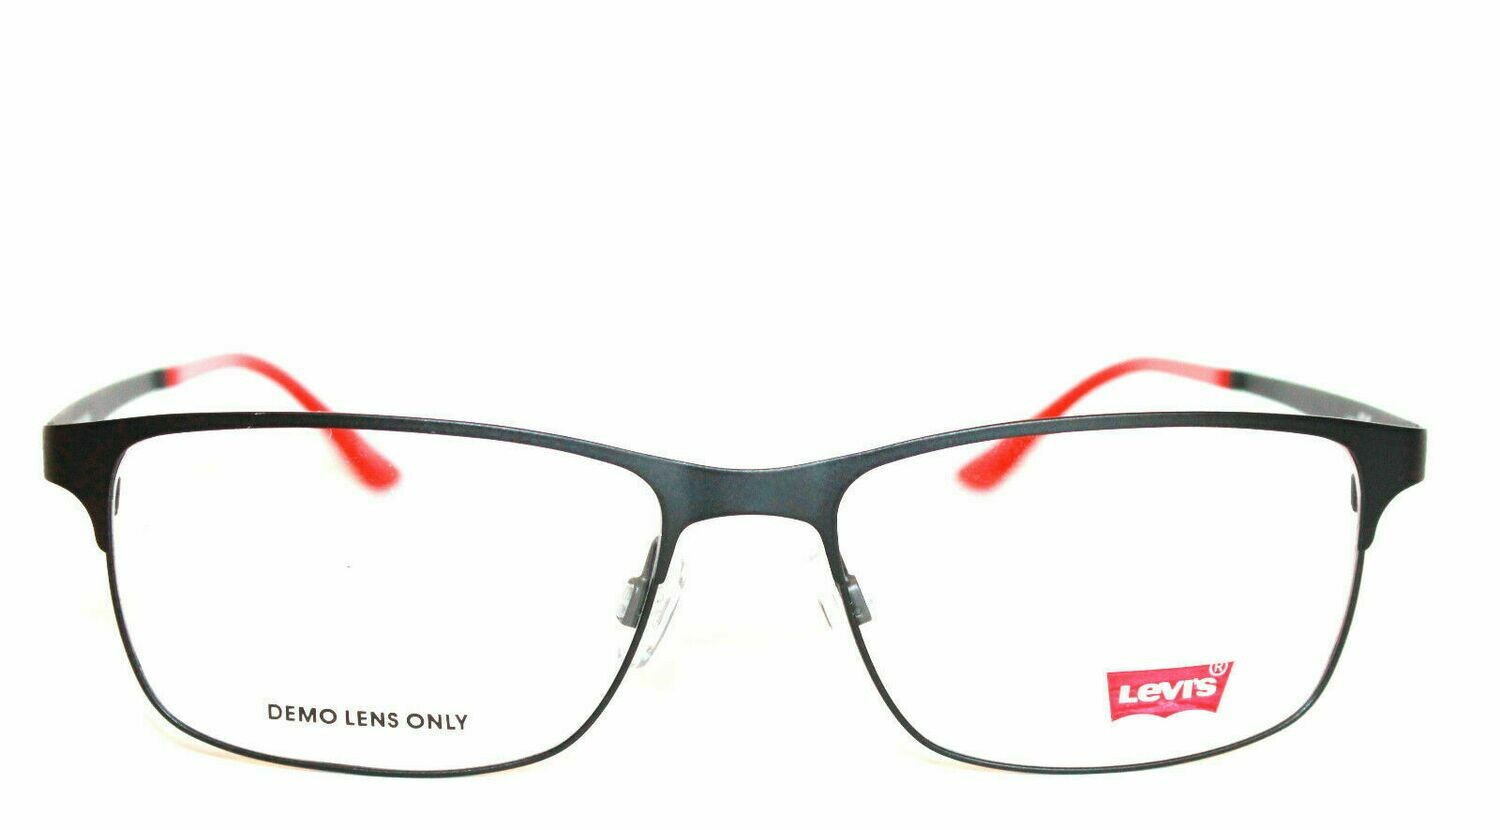 Authentic and New Levi's LS103 eyeglass frame in Black* Levi's Case included